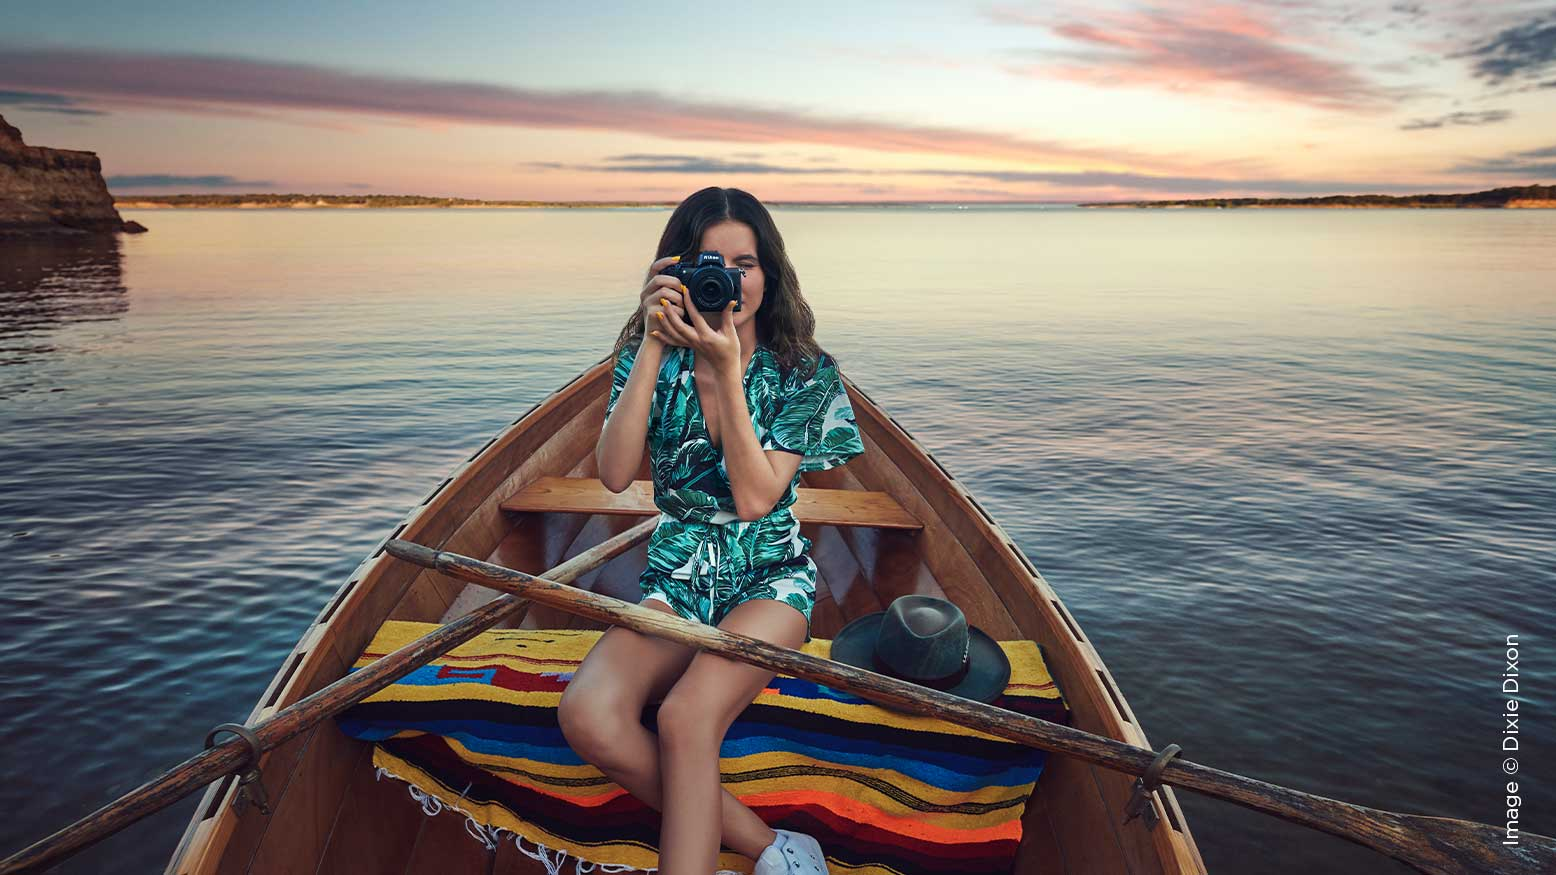 The Traveling Commercial Photographer